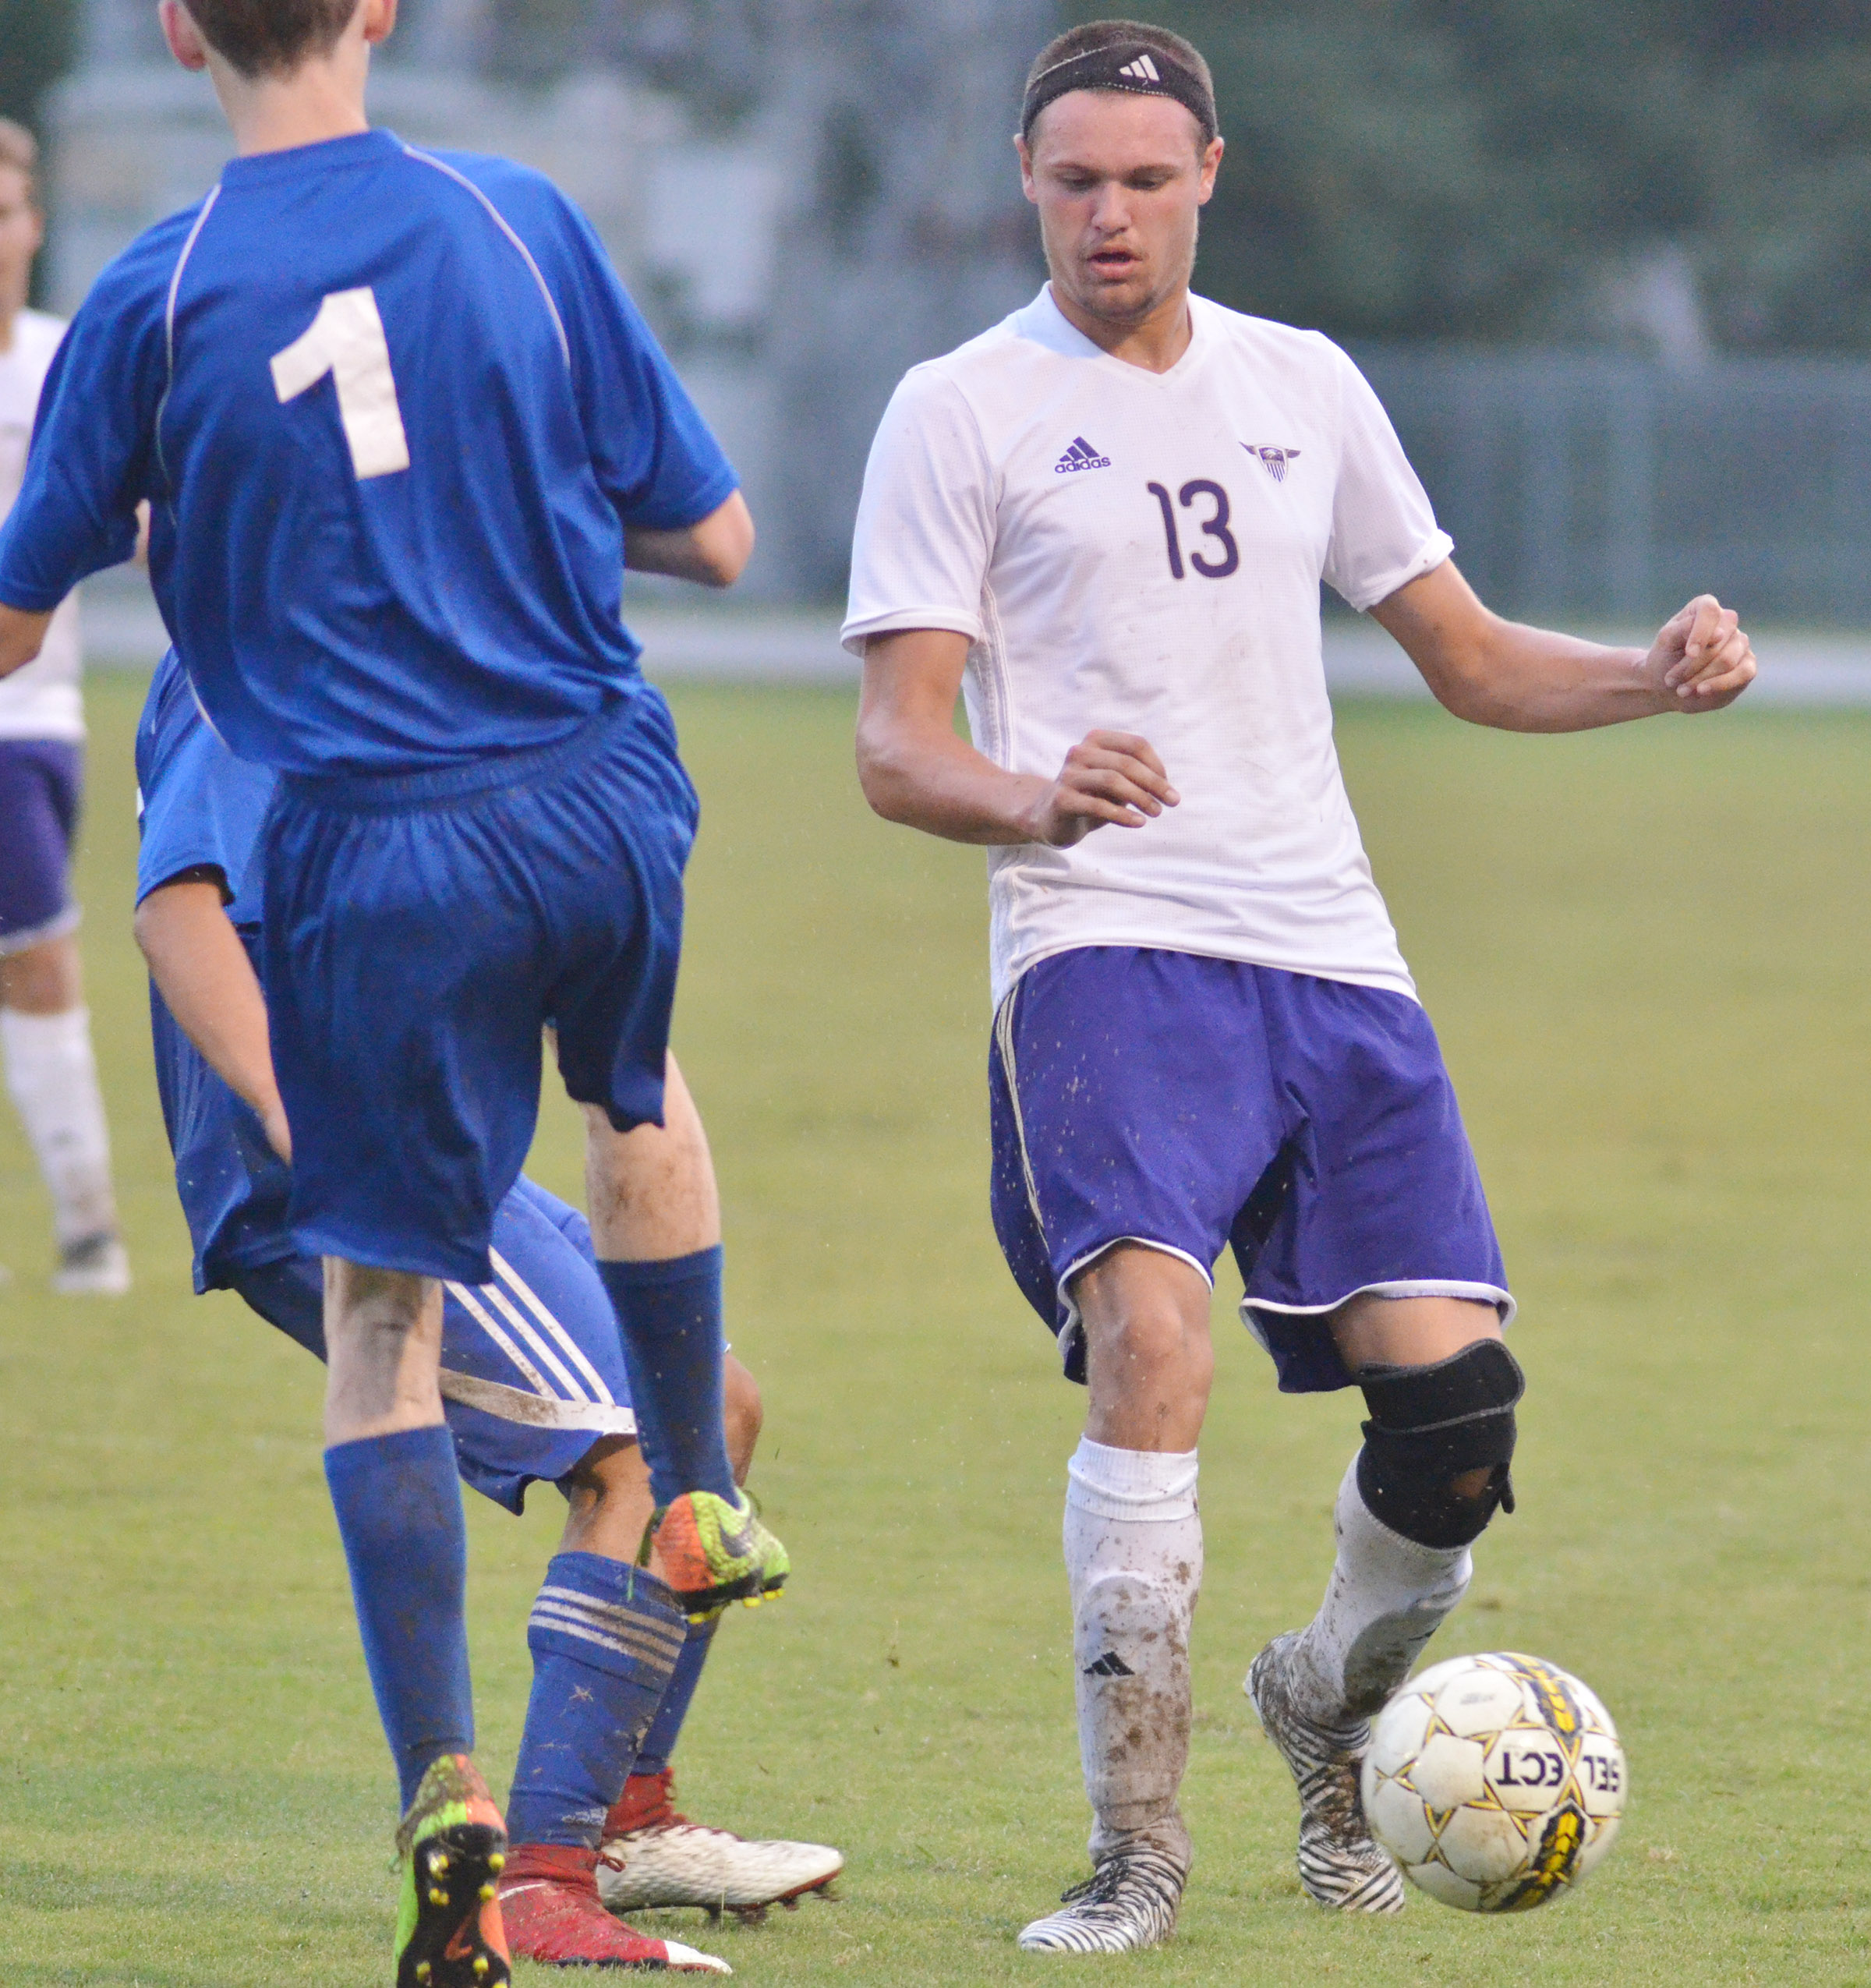 CHS senior Logan Cole plays defense.